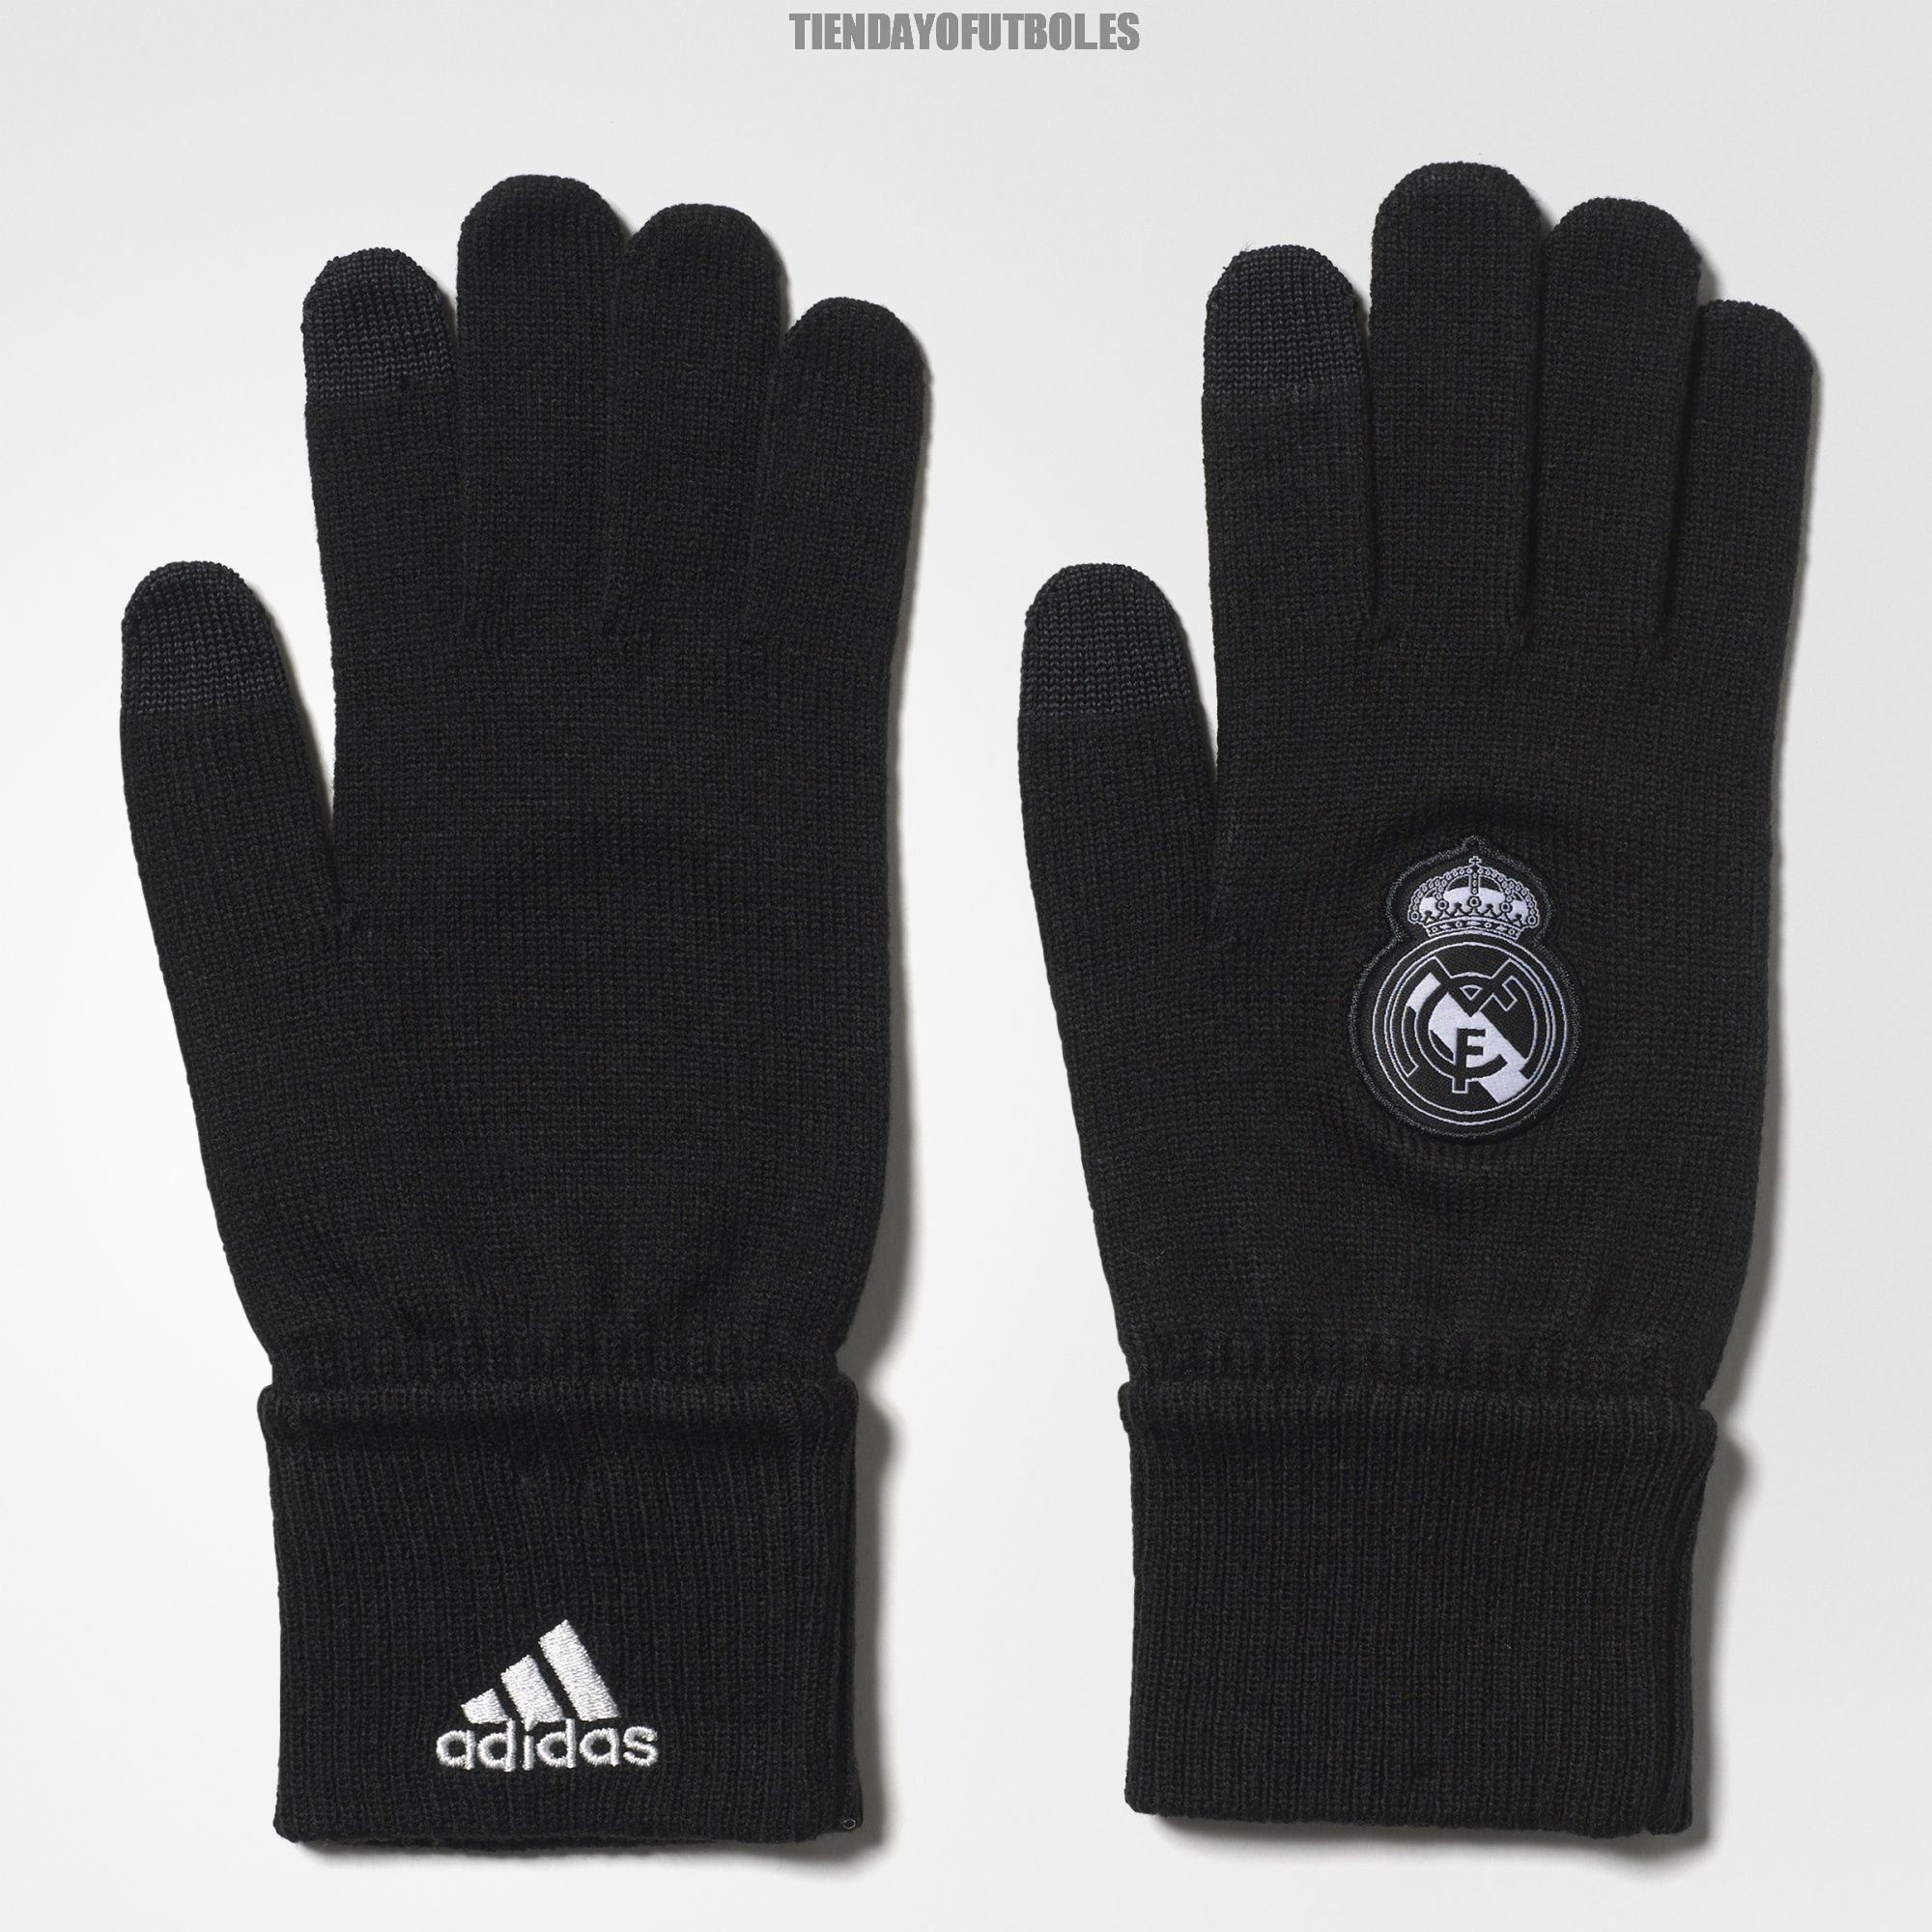 Real M guantes  60d5129c322